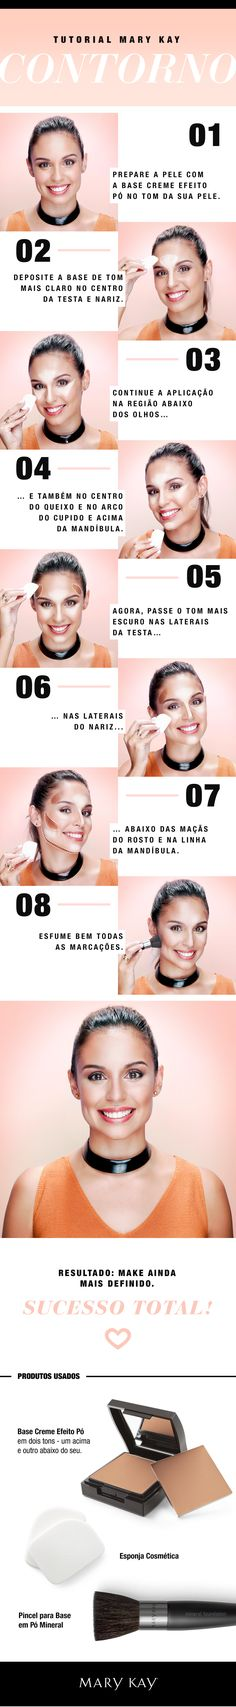 Tutorial de Contorno usando a Base Creme Efeito Pó Mary Kay! Makeup Inspo, Makeup Art, Makeup Inspiration, Makeup Tips, Health And Beauty Tips, Beauty Make Up, Mary Kay Party, Makeup Tattoos, Maquillage Halloween